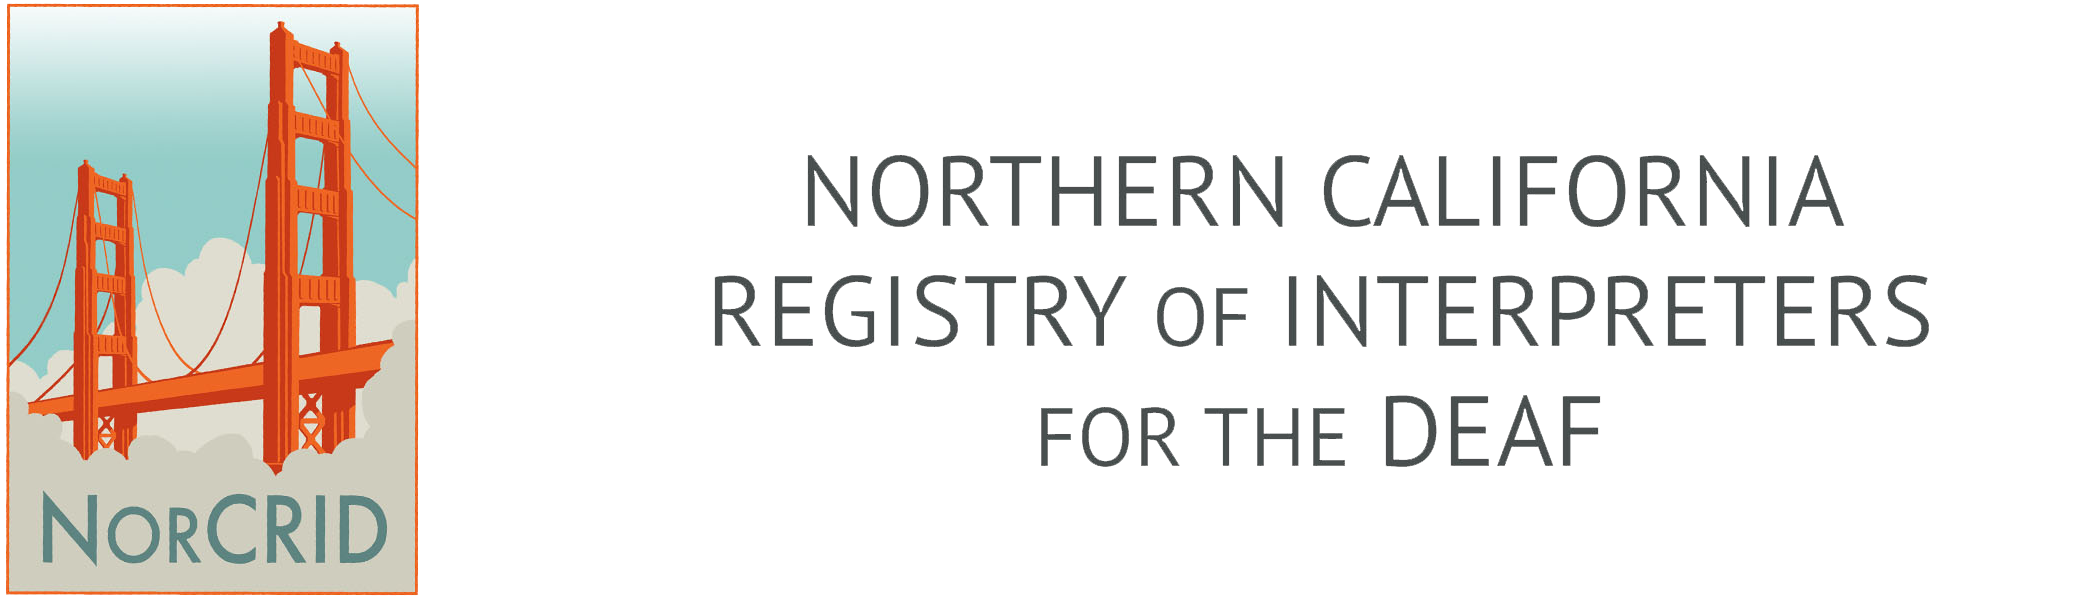 NorCRID logo (image of the Golden Gate Bridge with turquoise sky above the peaks and clouds below, the text NorCRID is at the bottom of the logo) and banner reading Northern California Registry of Interpreters for the Deaf